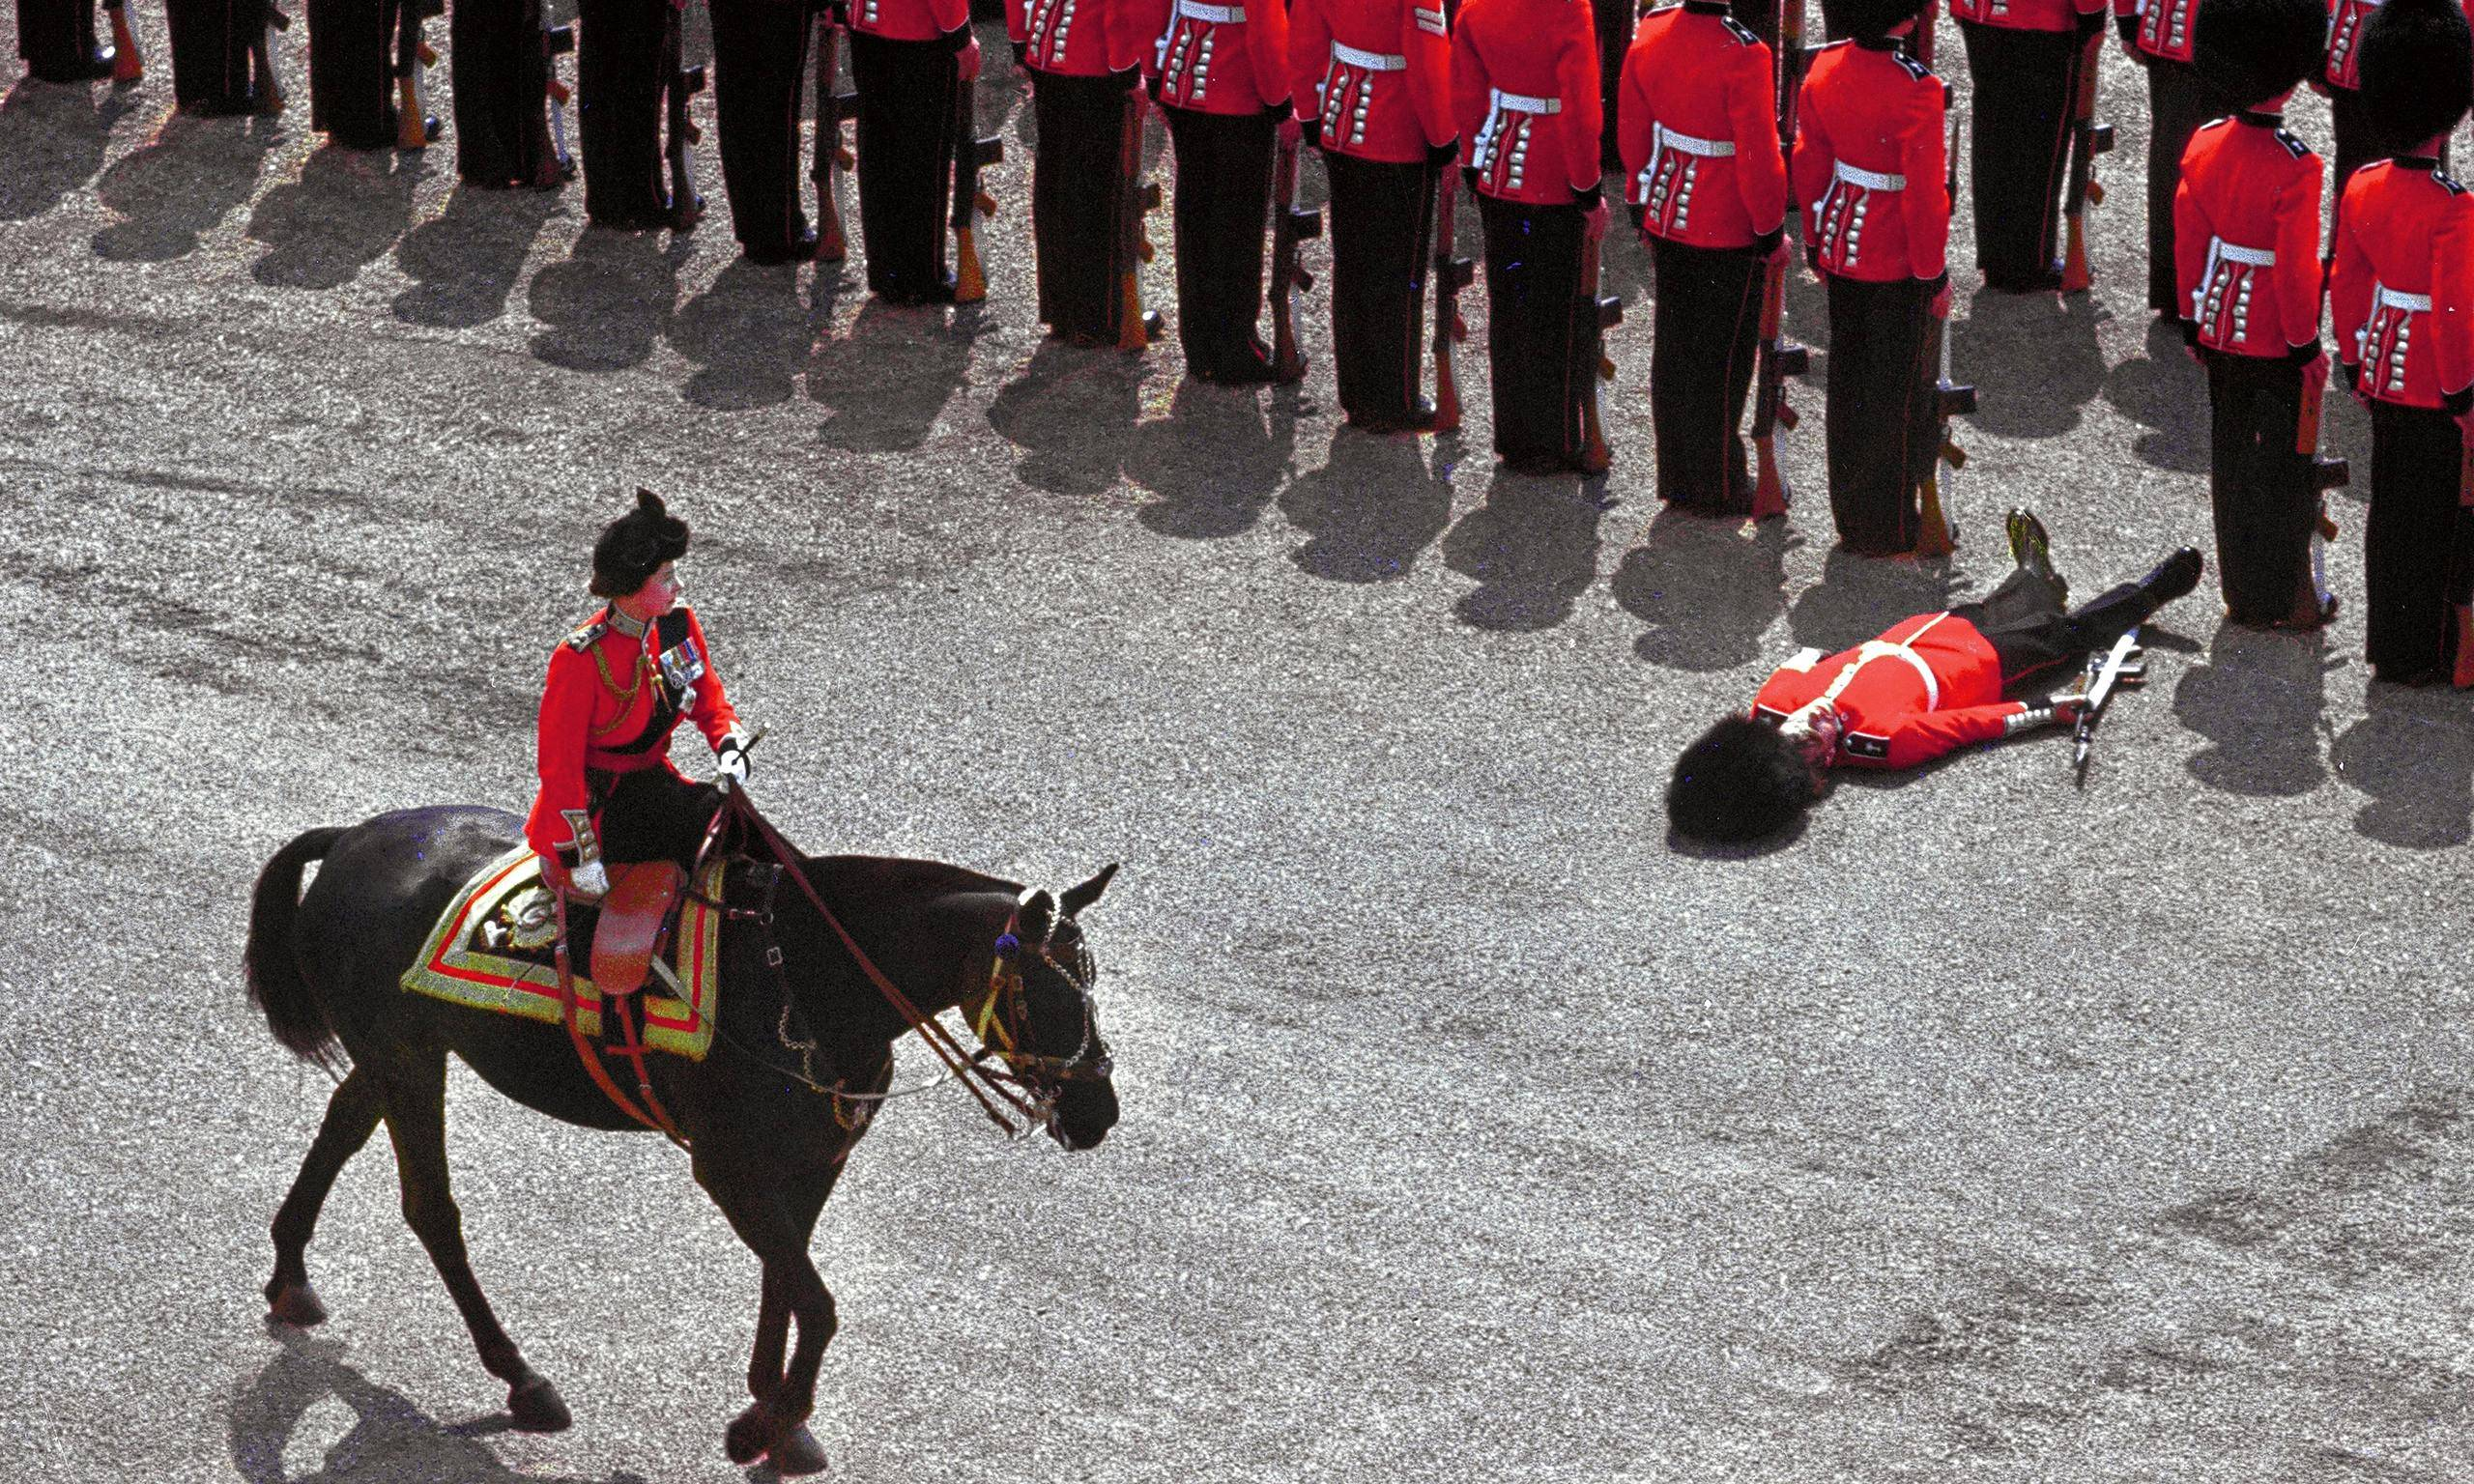 a-guard-of-honor-passes-out-as-queen-elizabeth-2-rides-past-during-the-trooping-the-colour-parade-1970